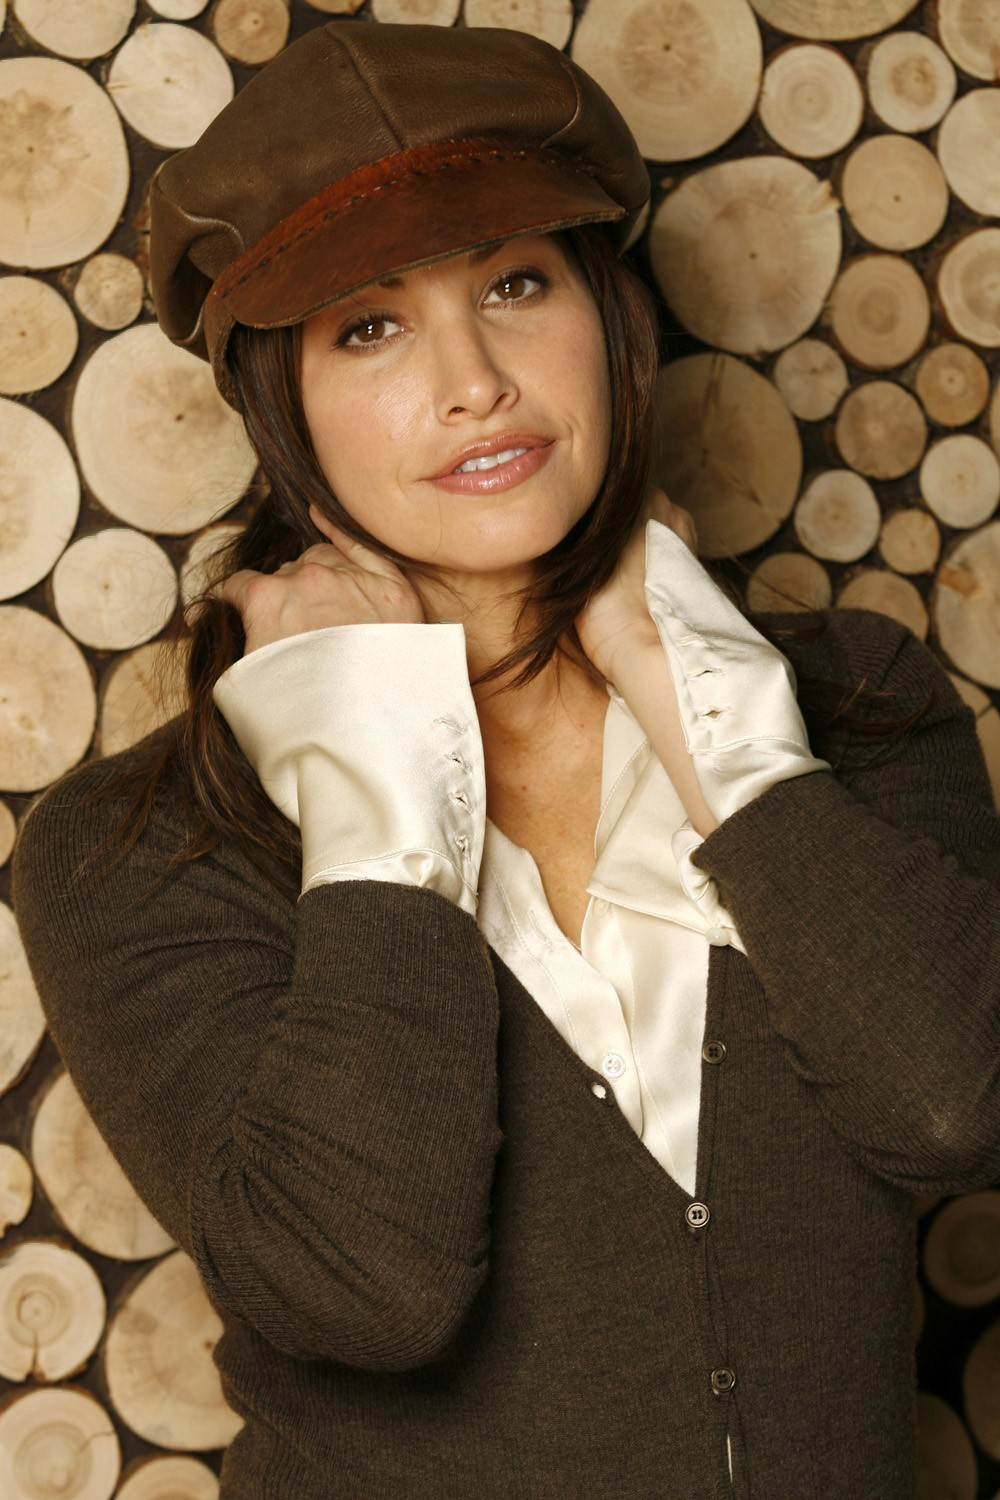 Actress MILF Gina Gershon HD Wallpaper